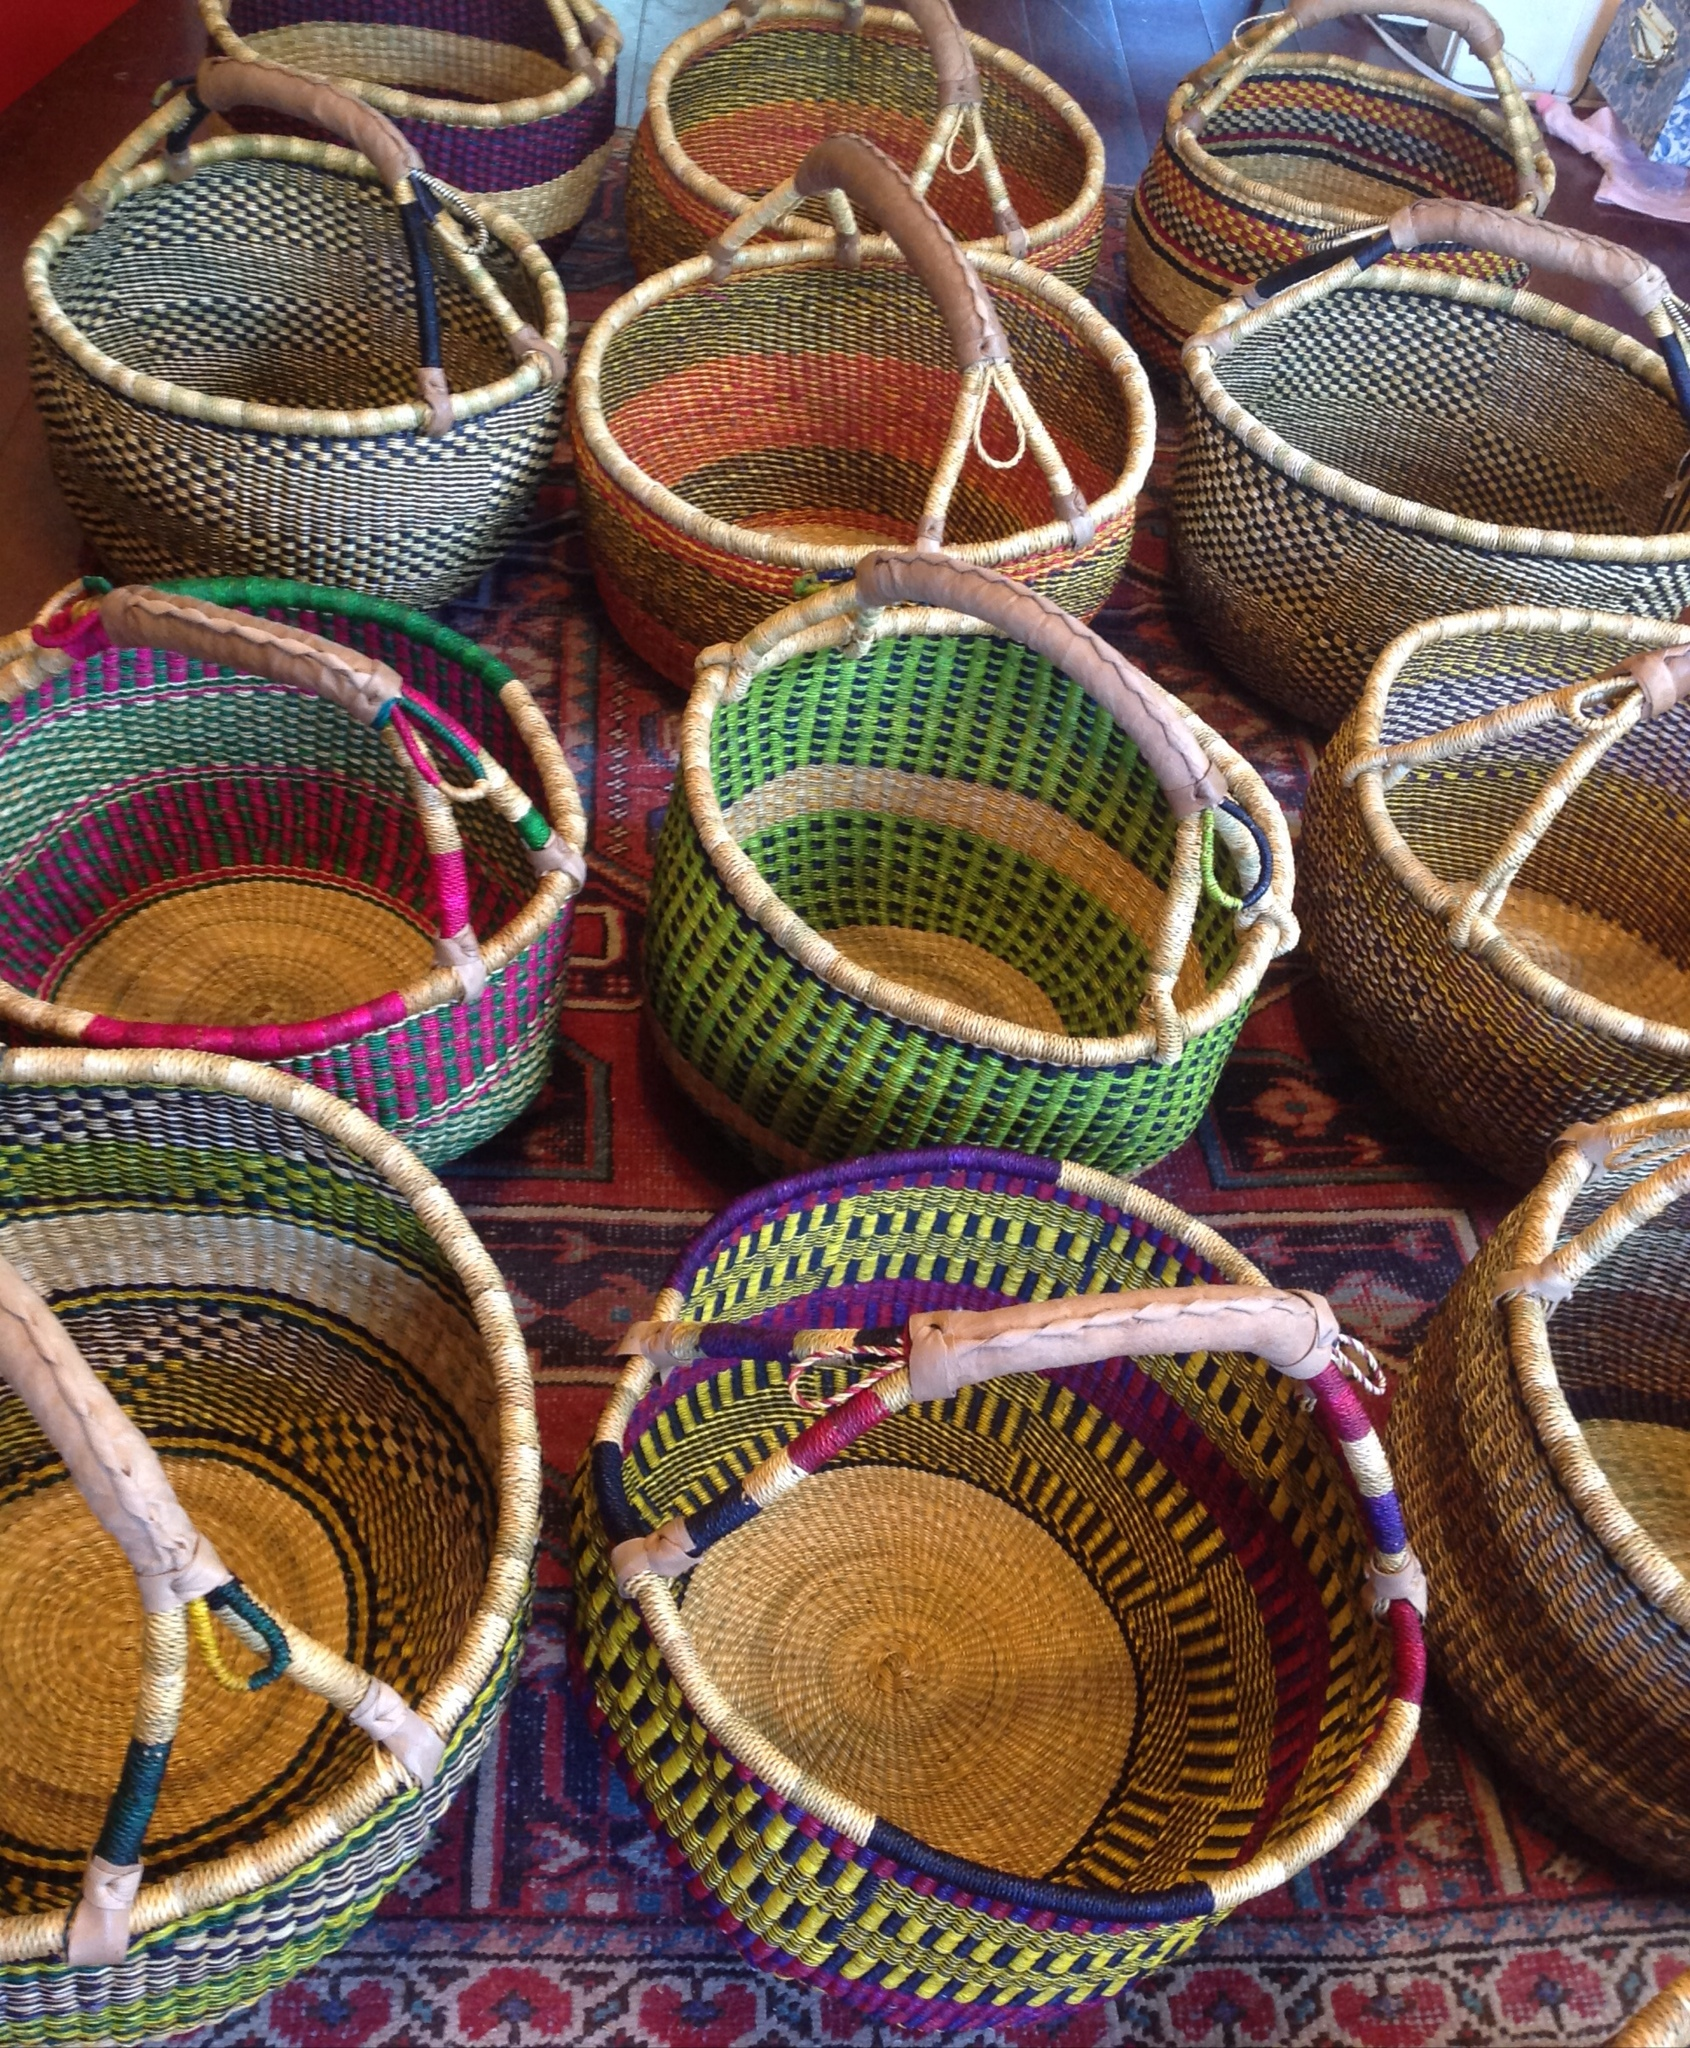 African Baskets: Three Bags Full Yarn Store - Vancouver